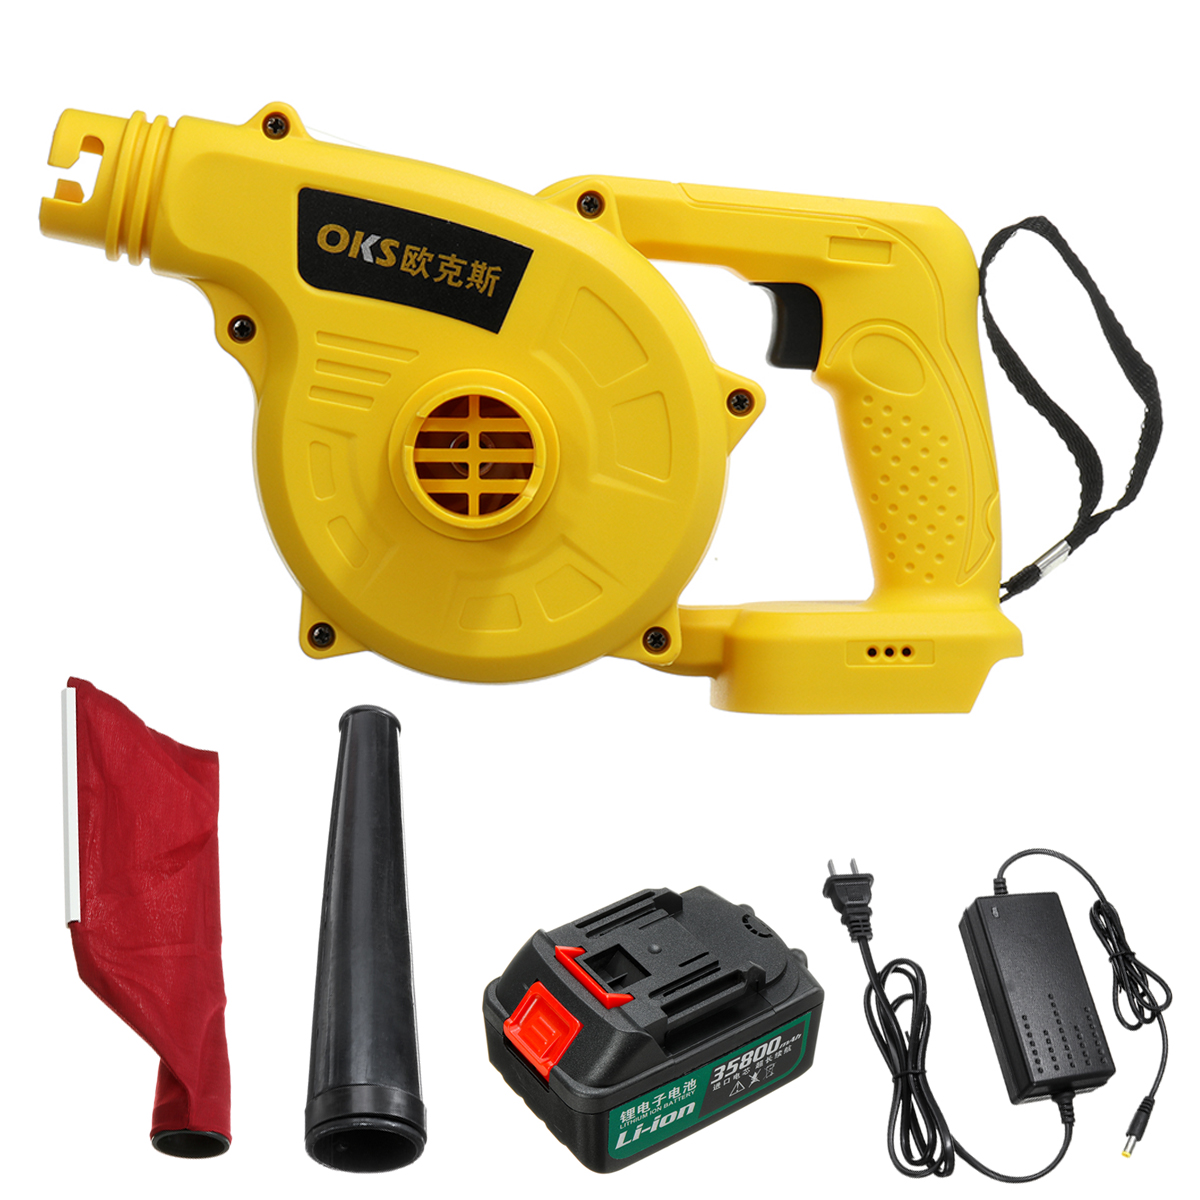 110-220V Cordless Handheld Electric Blower Air Vacuum Dust Leaf Cleaner Sweeper One Lithium Battery